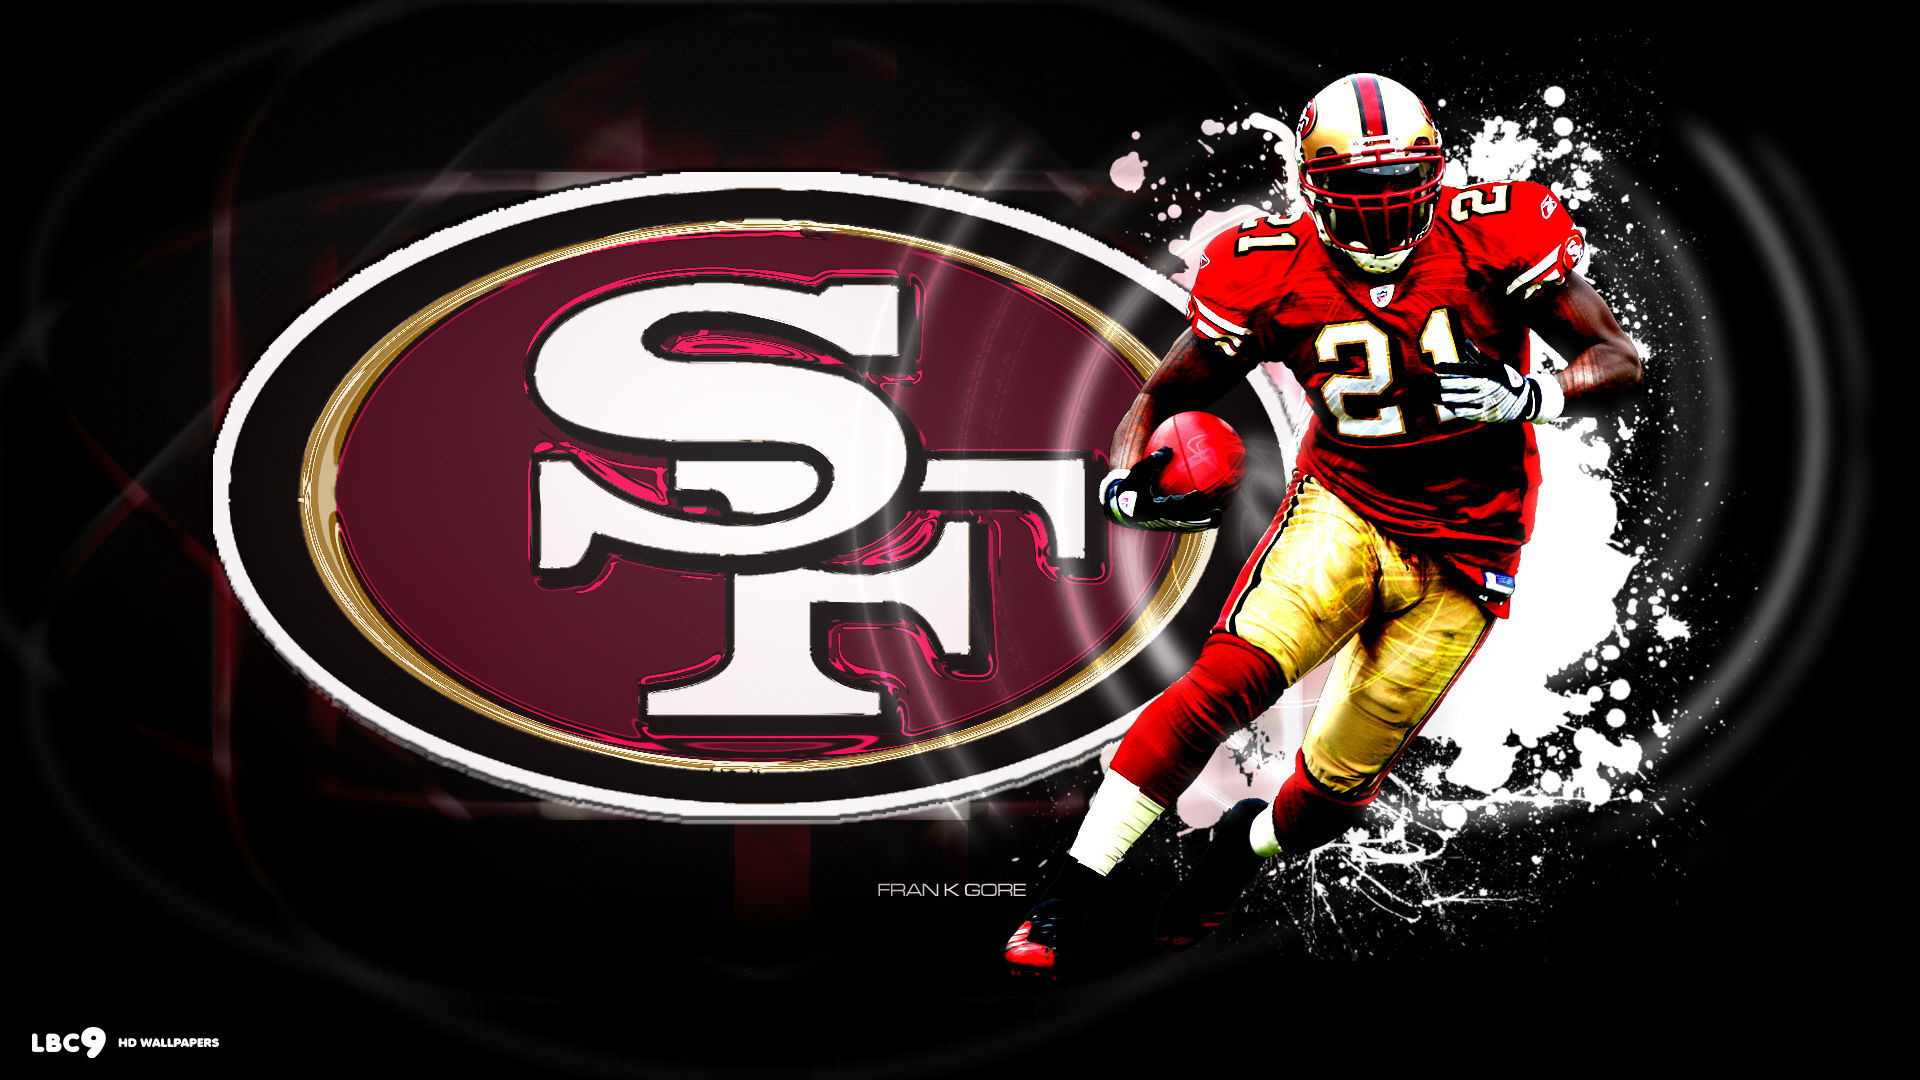 1920x1080 Cool 49ers Wallpaper 2018 San Francisco 49ers Wallpapers Pc iPhone android